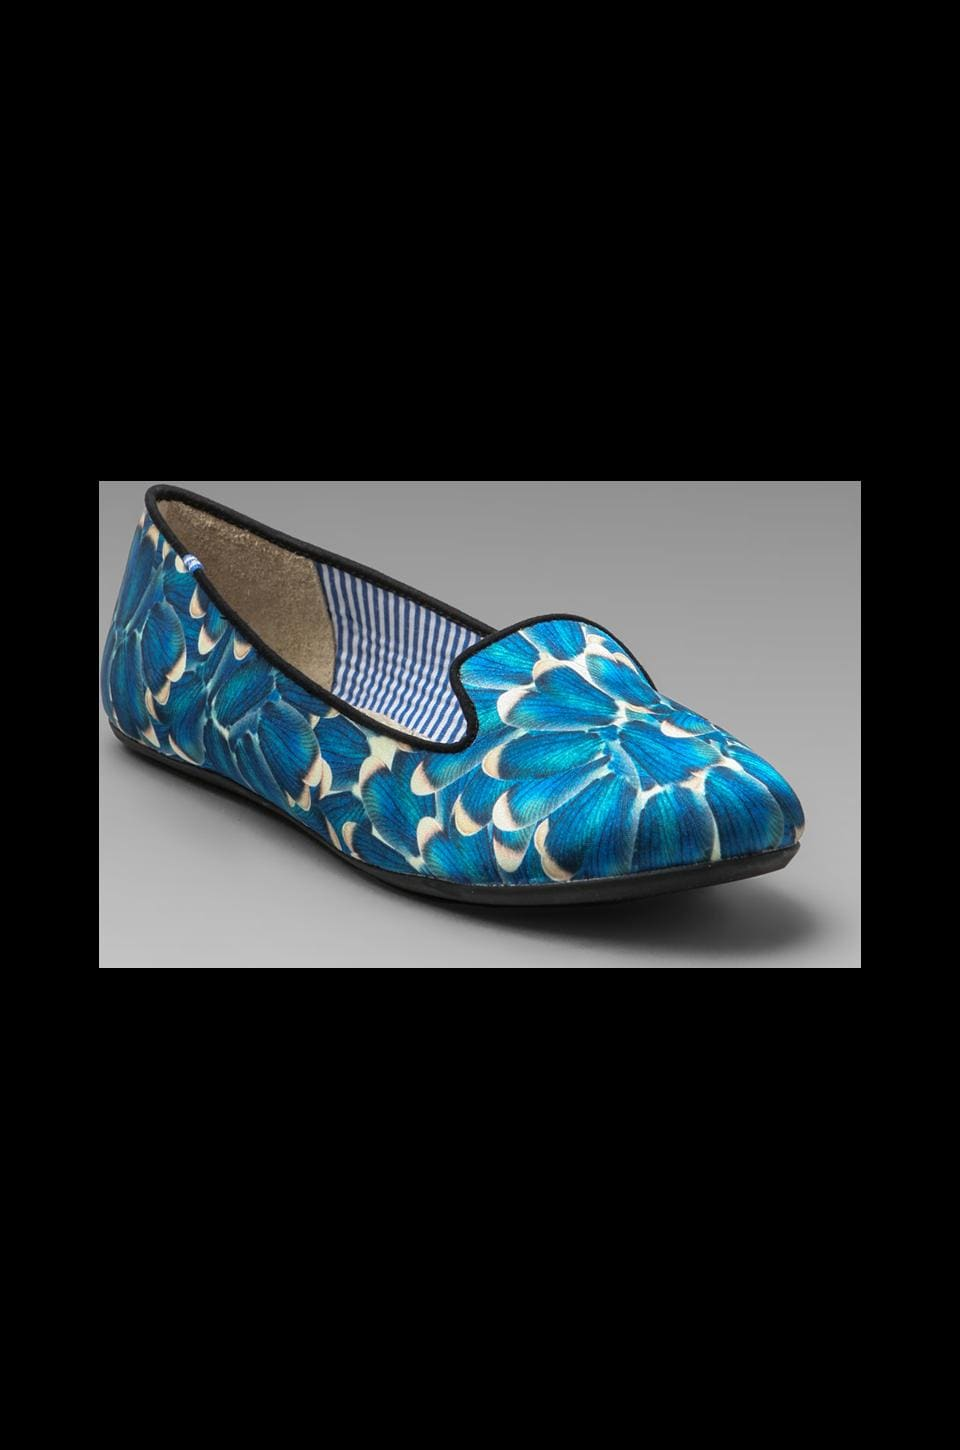 Charles Philip Shanghai Yasmine Feathers Flat in Blue Wings